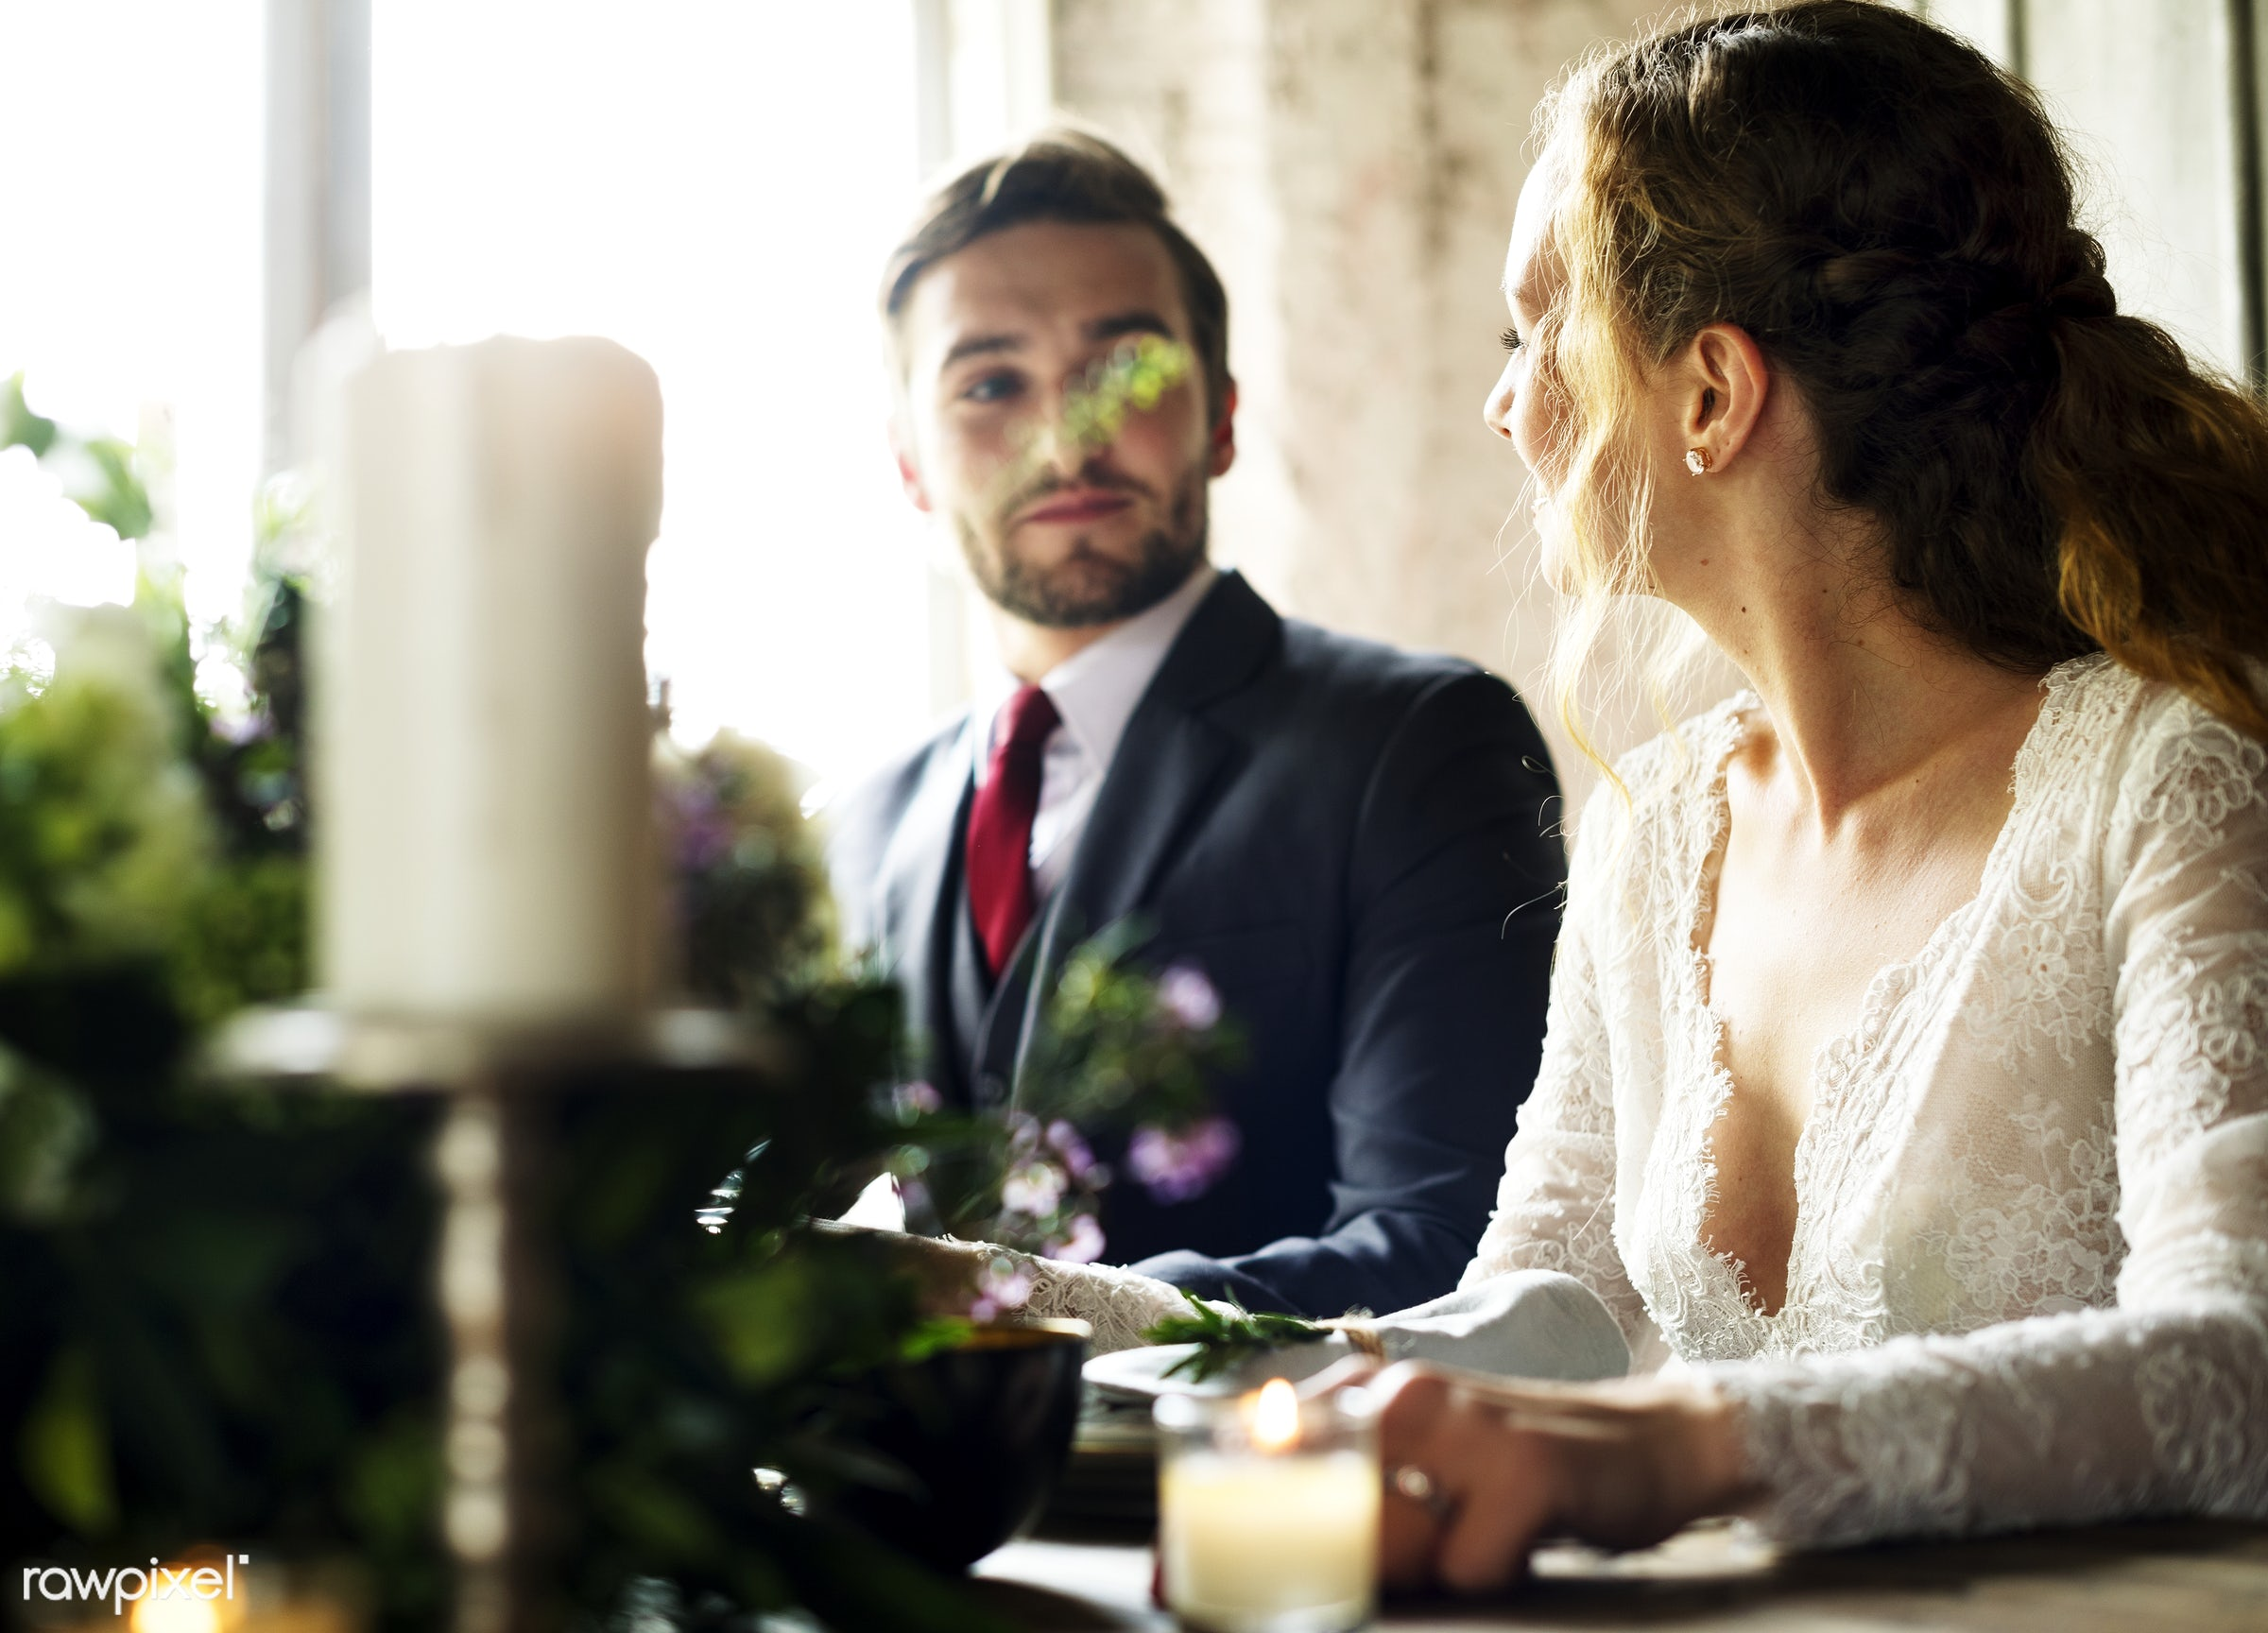 expression, person, occasion, smitten, husband, restaurant, people, together, love, friends, married, woman, event, family,...